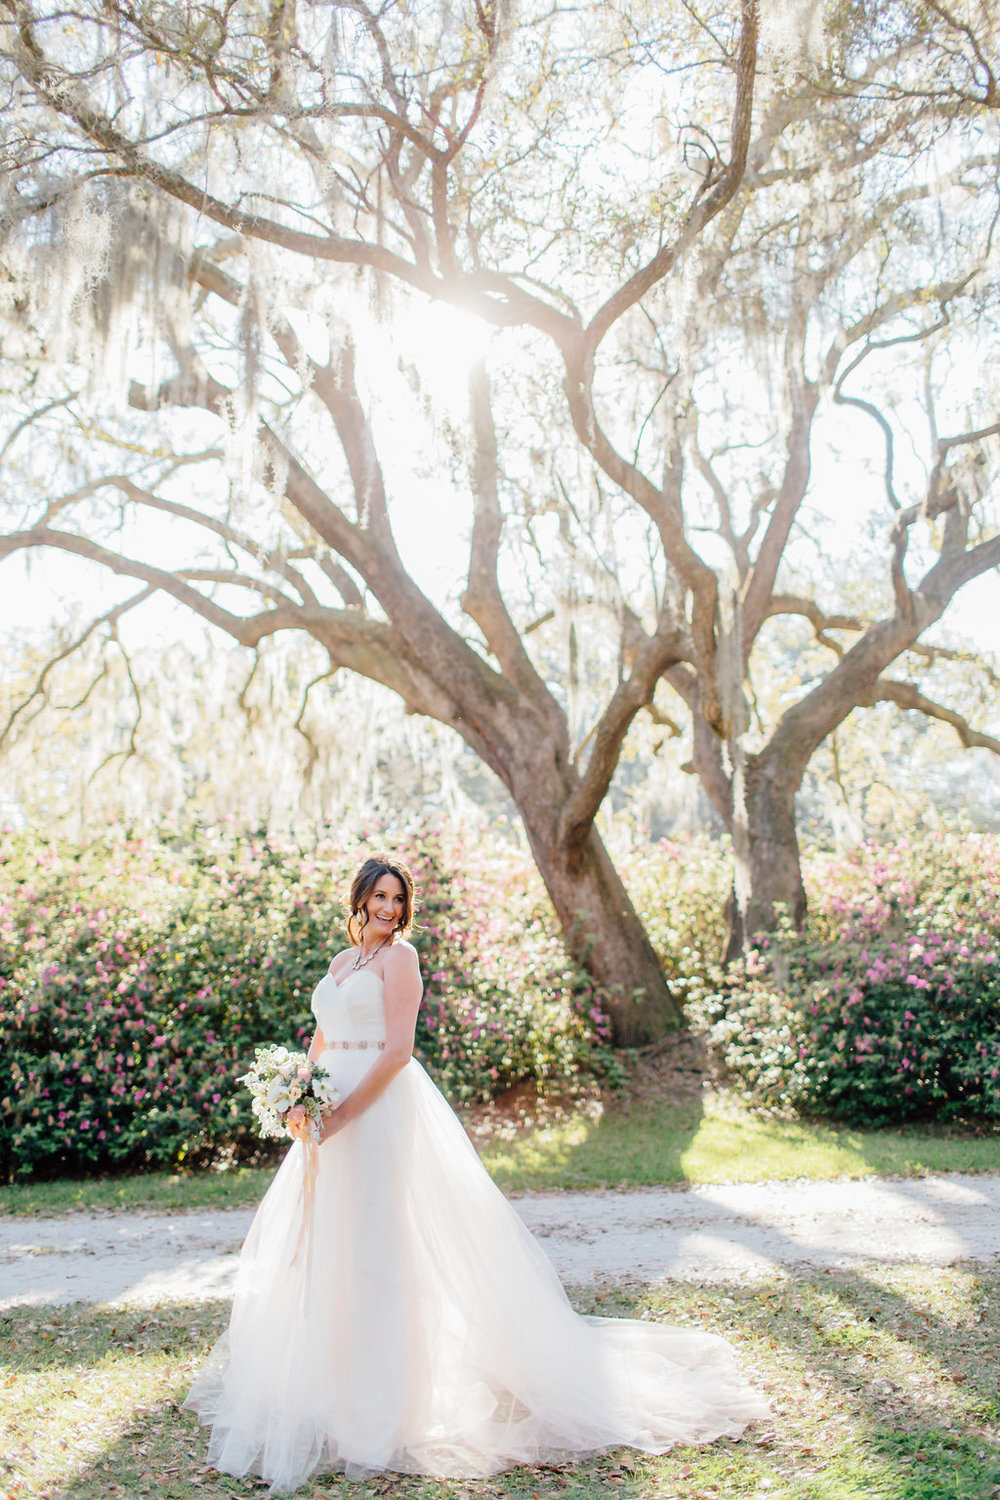 hannah-lane-photography-southern-weddings-blog-charleson-wedding-charleston-styled-shoot-ivory-and-beau-bridal-boutique-blush-by-hayley-paige-candi-blush-tulle-wedding-dress-savannah-bridal-boutique-savannah-wedding-dresses-rosegold-sash-34.jpg